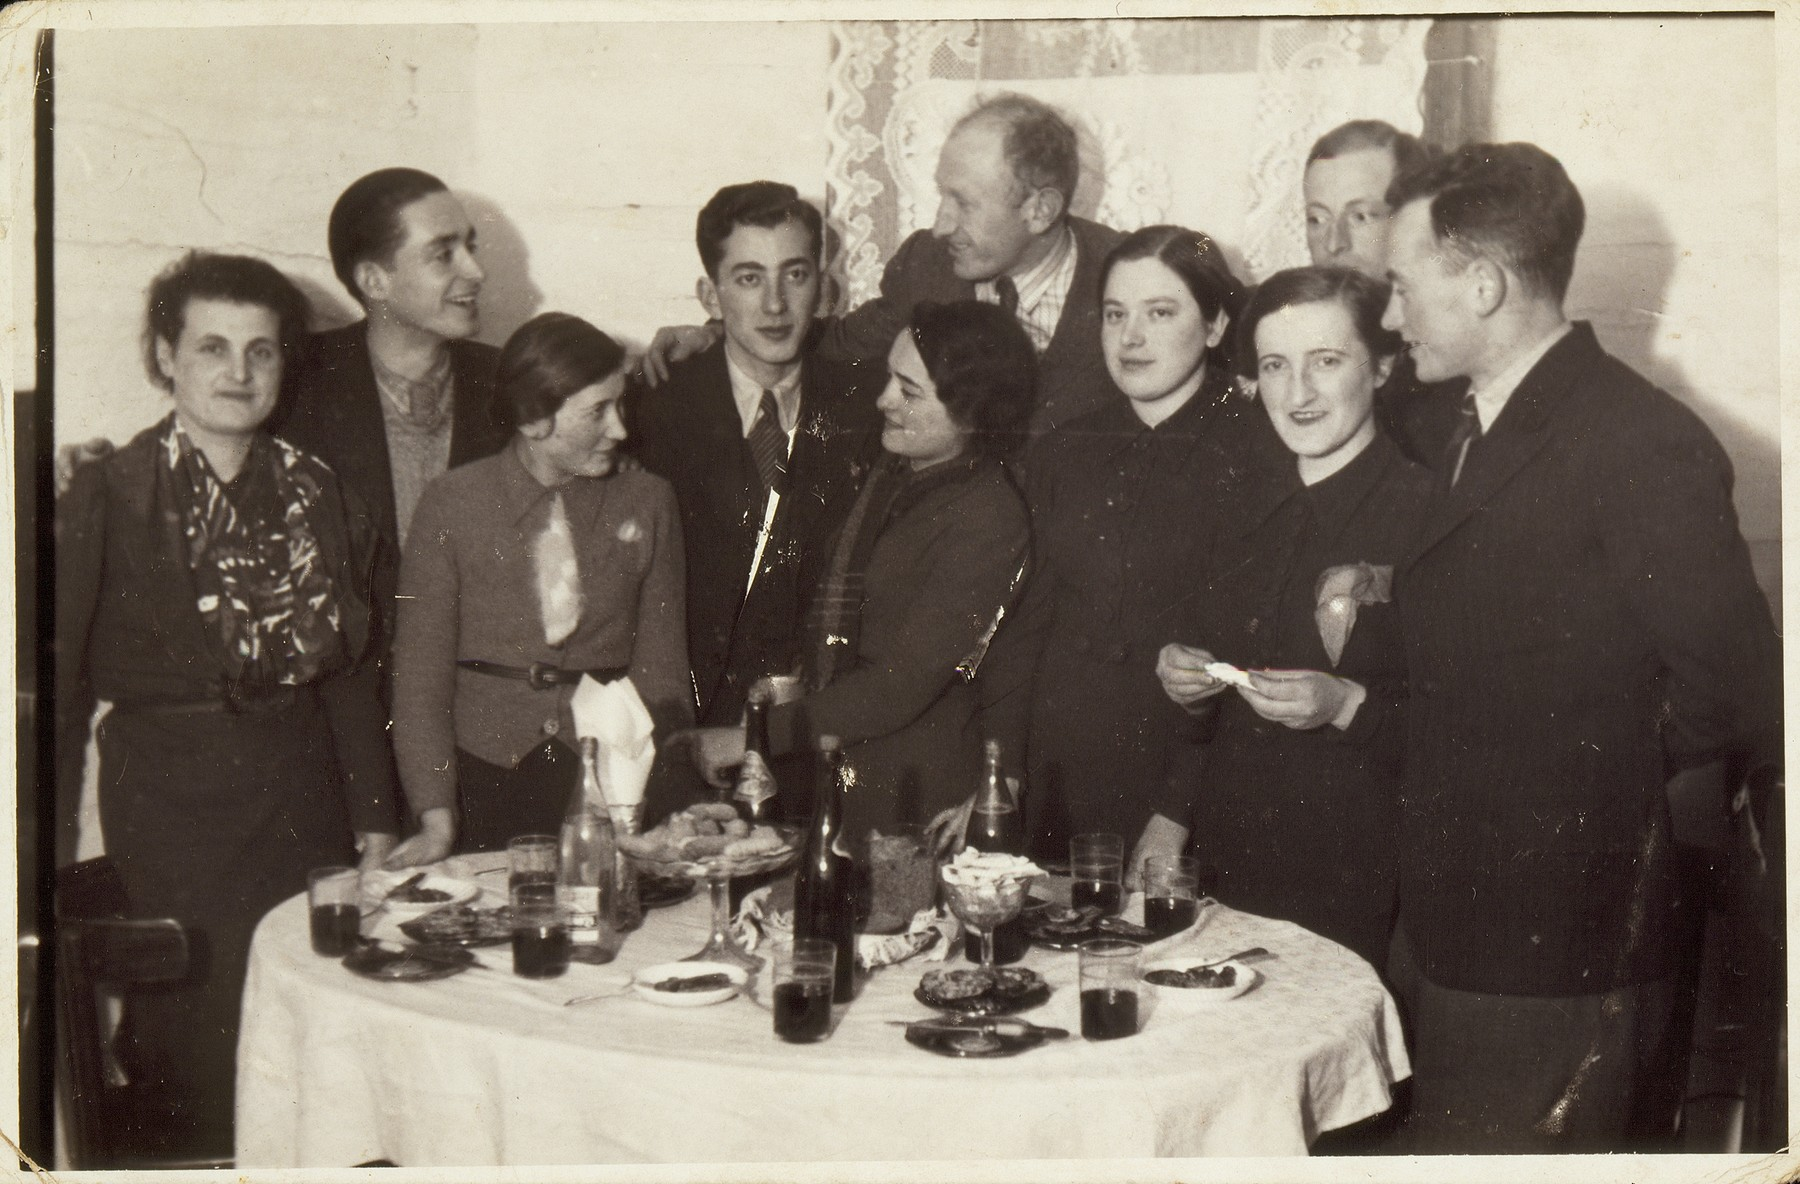 A Saturday night party at the home of Dina Weidenberg.  (right to left)  David Leib Levin; Miriam Kabacznik; her brother Shepske (in the back); Dina Weidenberg, Yehiel Blacharowicz; Kreinele Kanichowski; Dov Wolotzki;  Frumele Abelov, also a successful shopkeeper; an unidentified visitor; and Sarah Lejbowicz, sister of photographer Rephael.   David-Leib survived the war in the forest, and Miriam and Shepske in hiding.  Dov was liberated from Dachau.  Kreinele was killed by members of the AK, including Pietka Barteszewicz, the caretaker of the Polish school where Kreinele once studied. All the others were killed by the Germans during the September 1941 mass shooting action in Eisiskes.